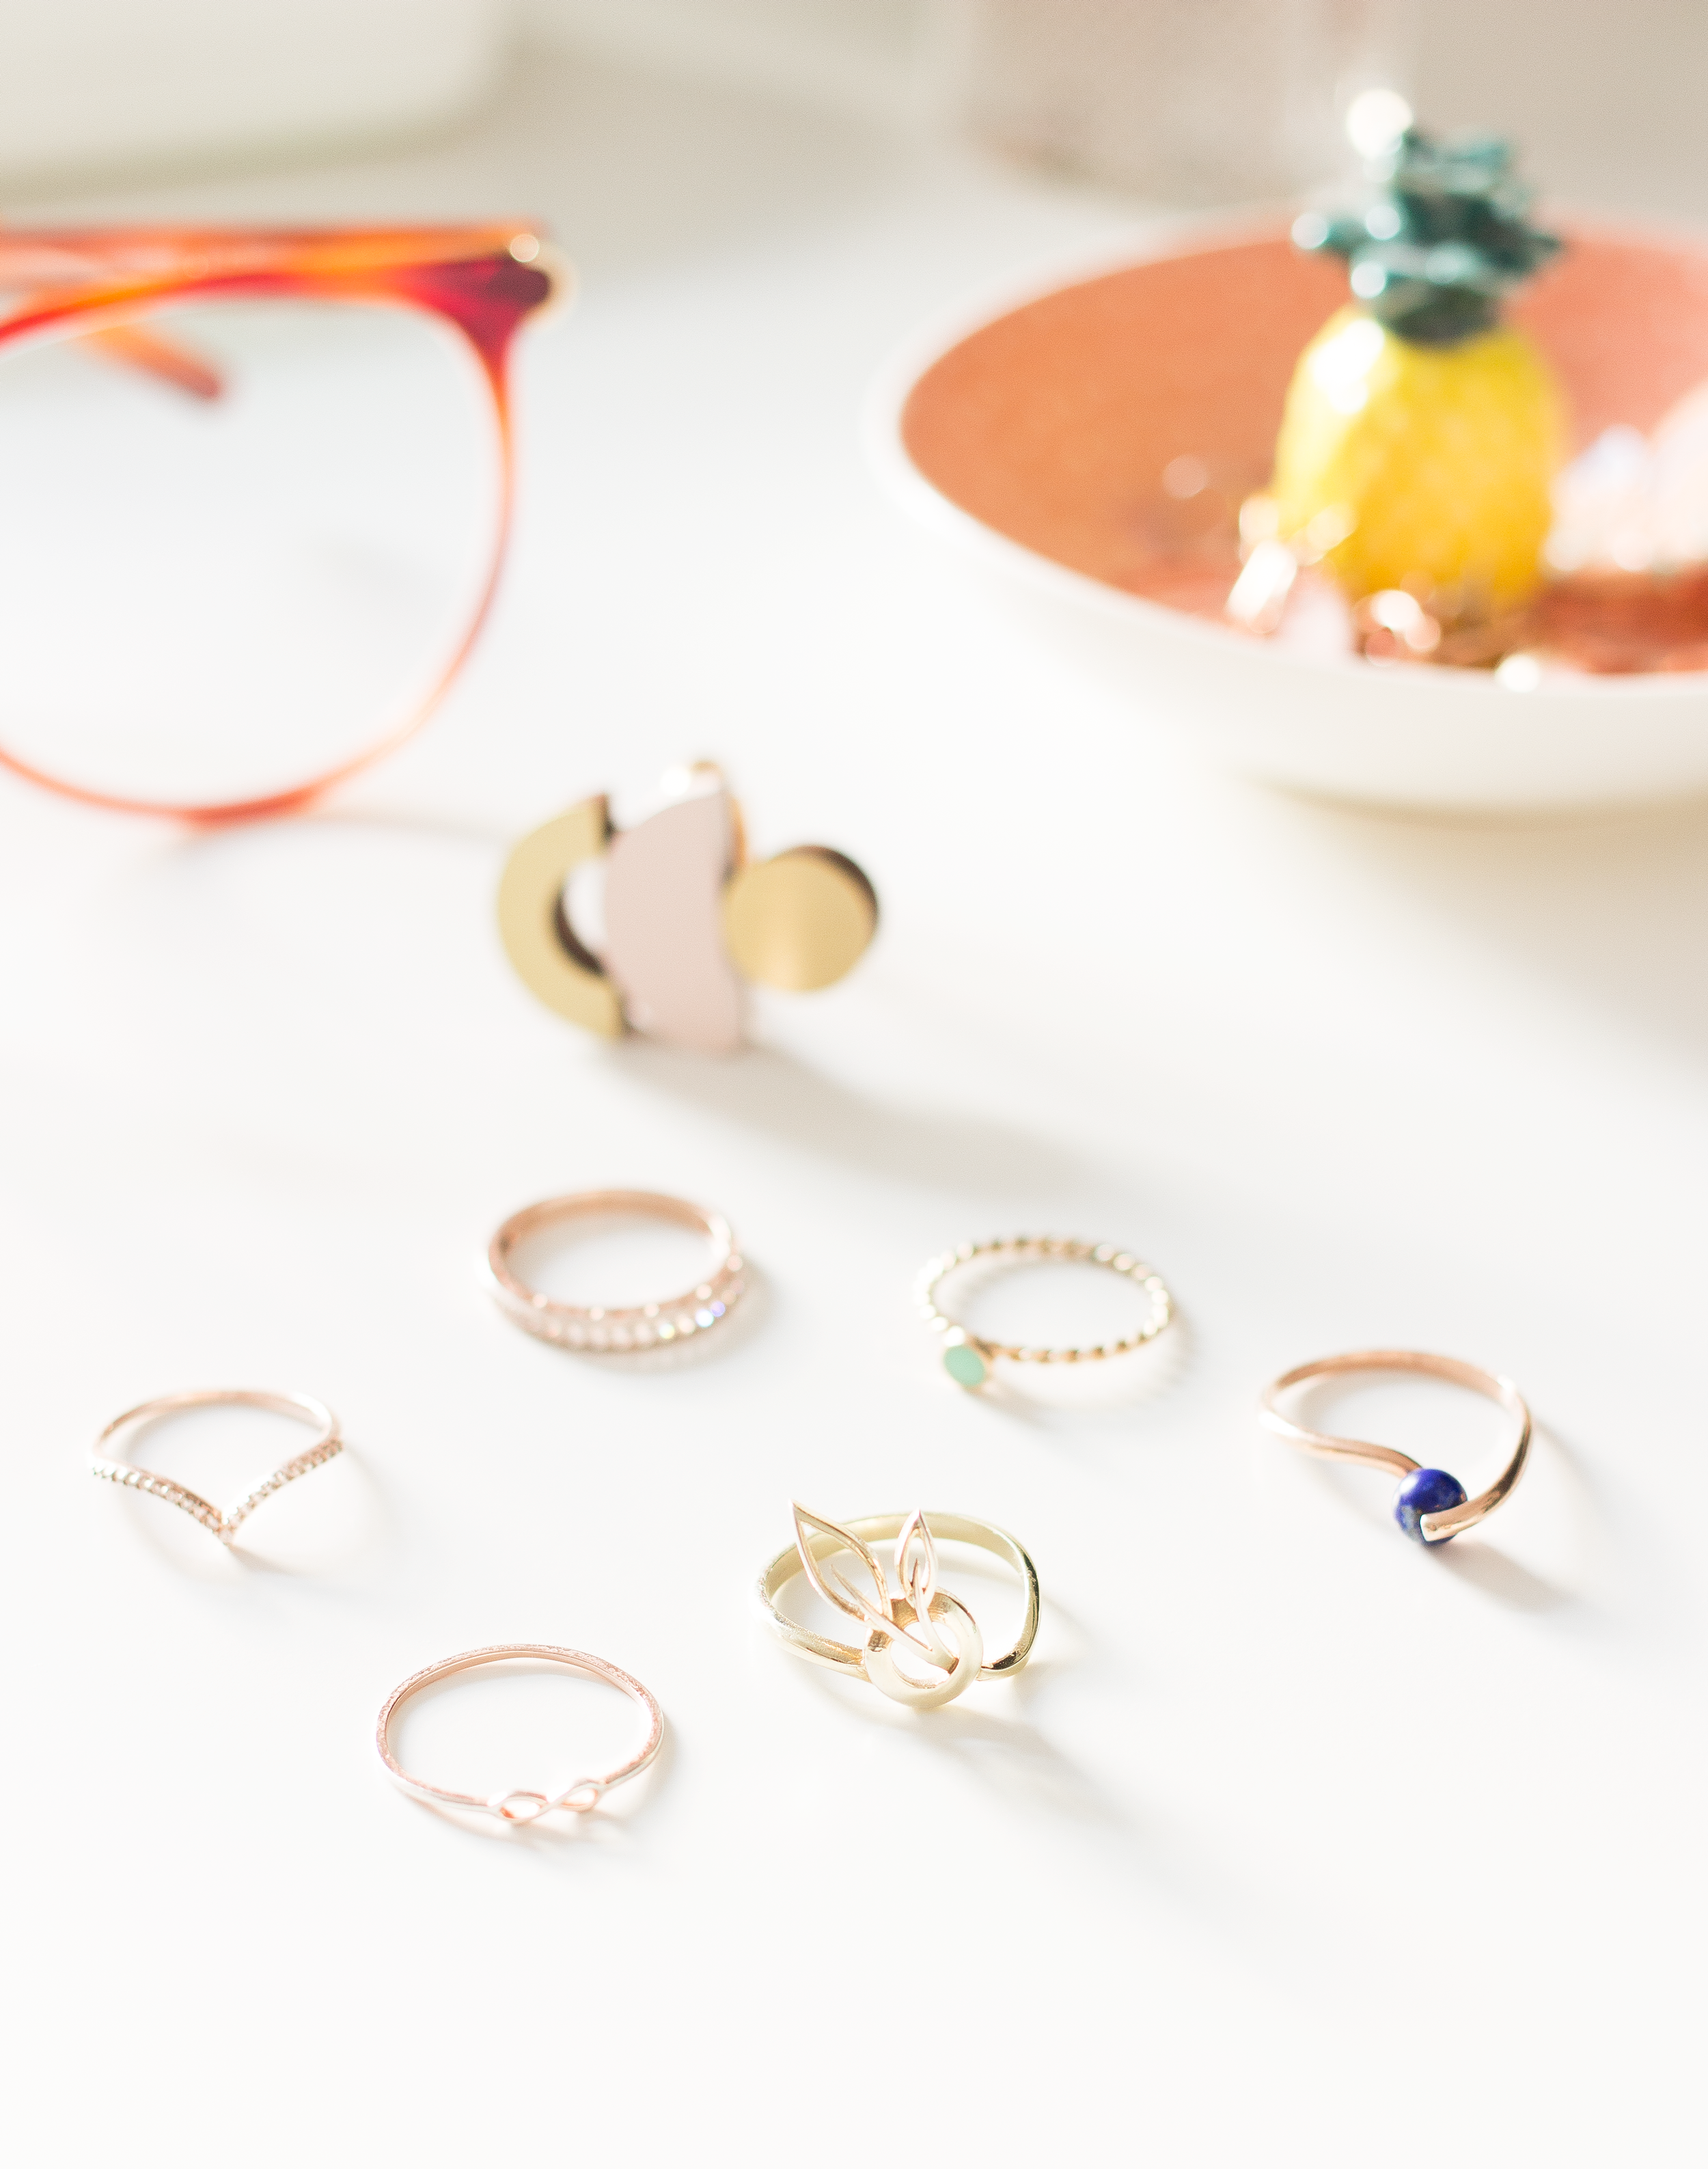 RINGS - Rings are always something that I've always had a soft spot for. From being a child and being totally obsessed with mood and birthstone rings to now where I'm in love with really dainty minimal pieces. I've been building up on my little ring collection for years and adding in pieces here and there and here are the details on all my pieces;The eternity and solid band with the jewels are from Jewellery Box, the wishbone band is from Debenhams. The gold band with the mint green disc is from Accessorizeand two of my latest pieces are from Maravilo*. And what sets those two pieces aside from the rest is that Maravilo is a site set up for small independent designers to showcase their work and for us the public to shop. And of course, the pieces are absolutely beautiful, in particular, the gold leaf ring it's such a unique item. I stack all these pieces together and love the mixture of the rose gold against the classic yellow and find they all work together in harmony.